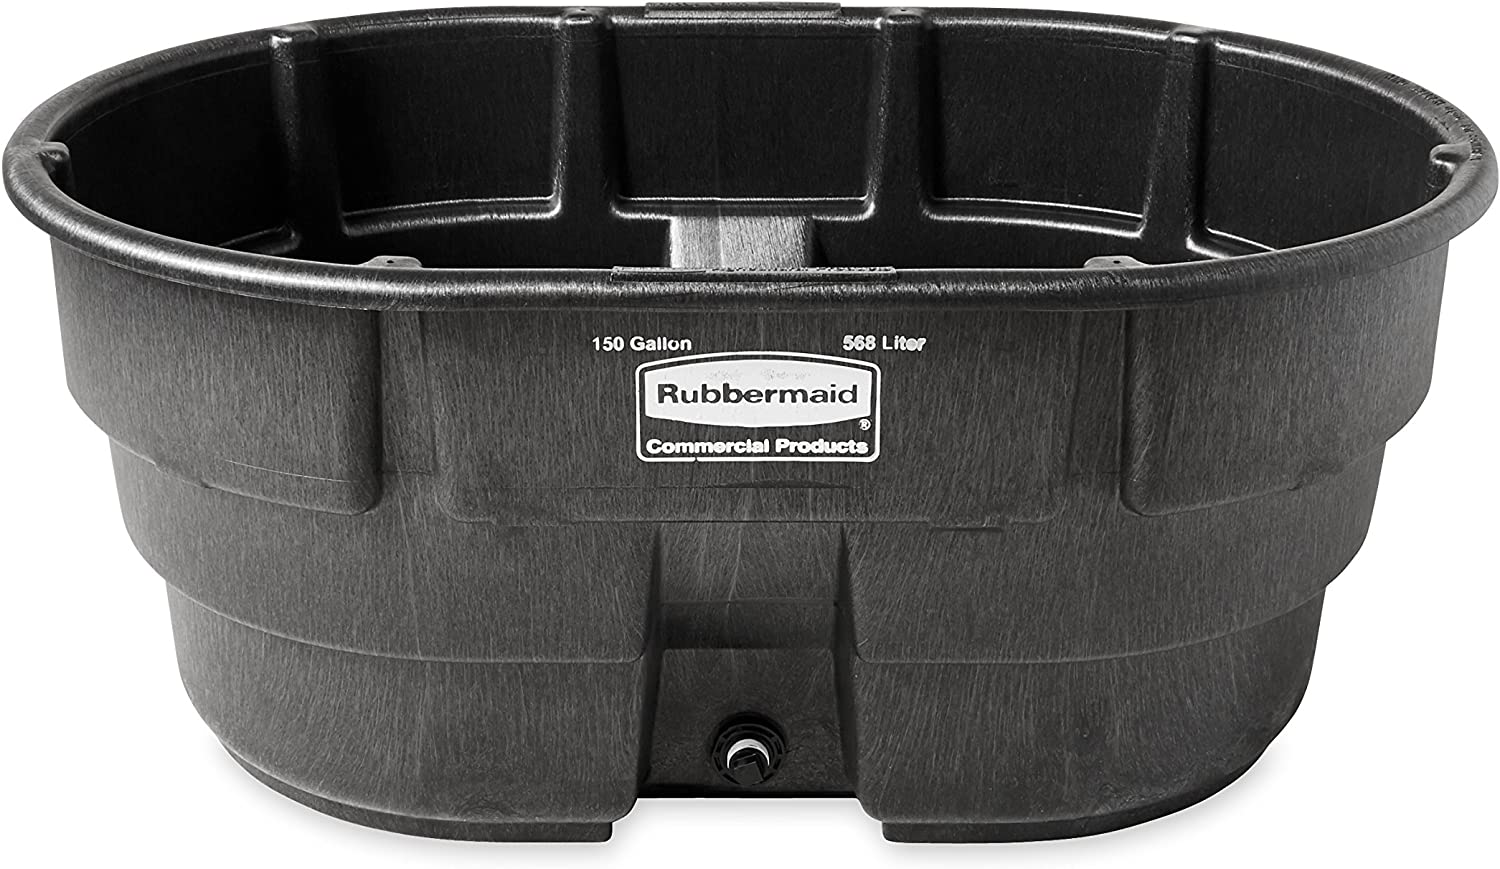 Rubbermaid 3517 Combo Pack with 3526, 3529  |Rubbermaid Agricultural Products